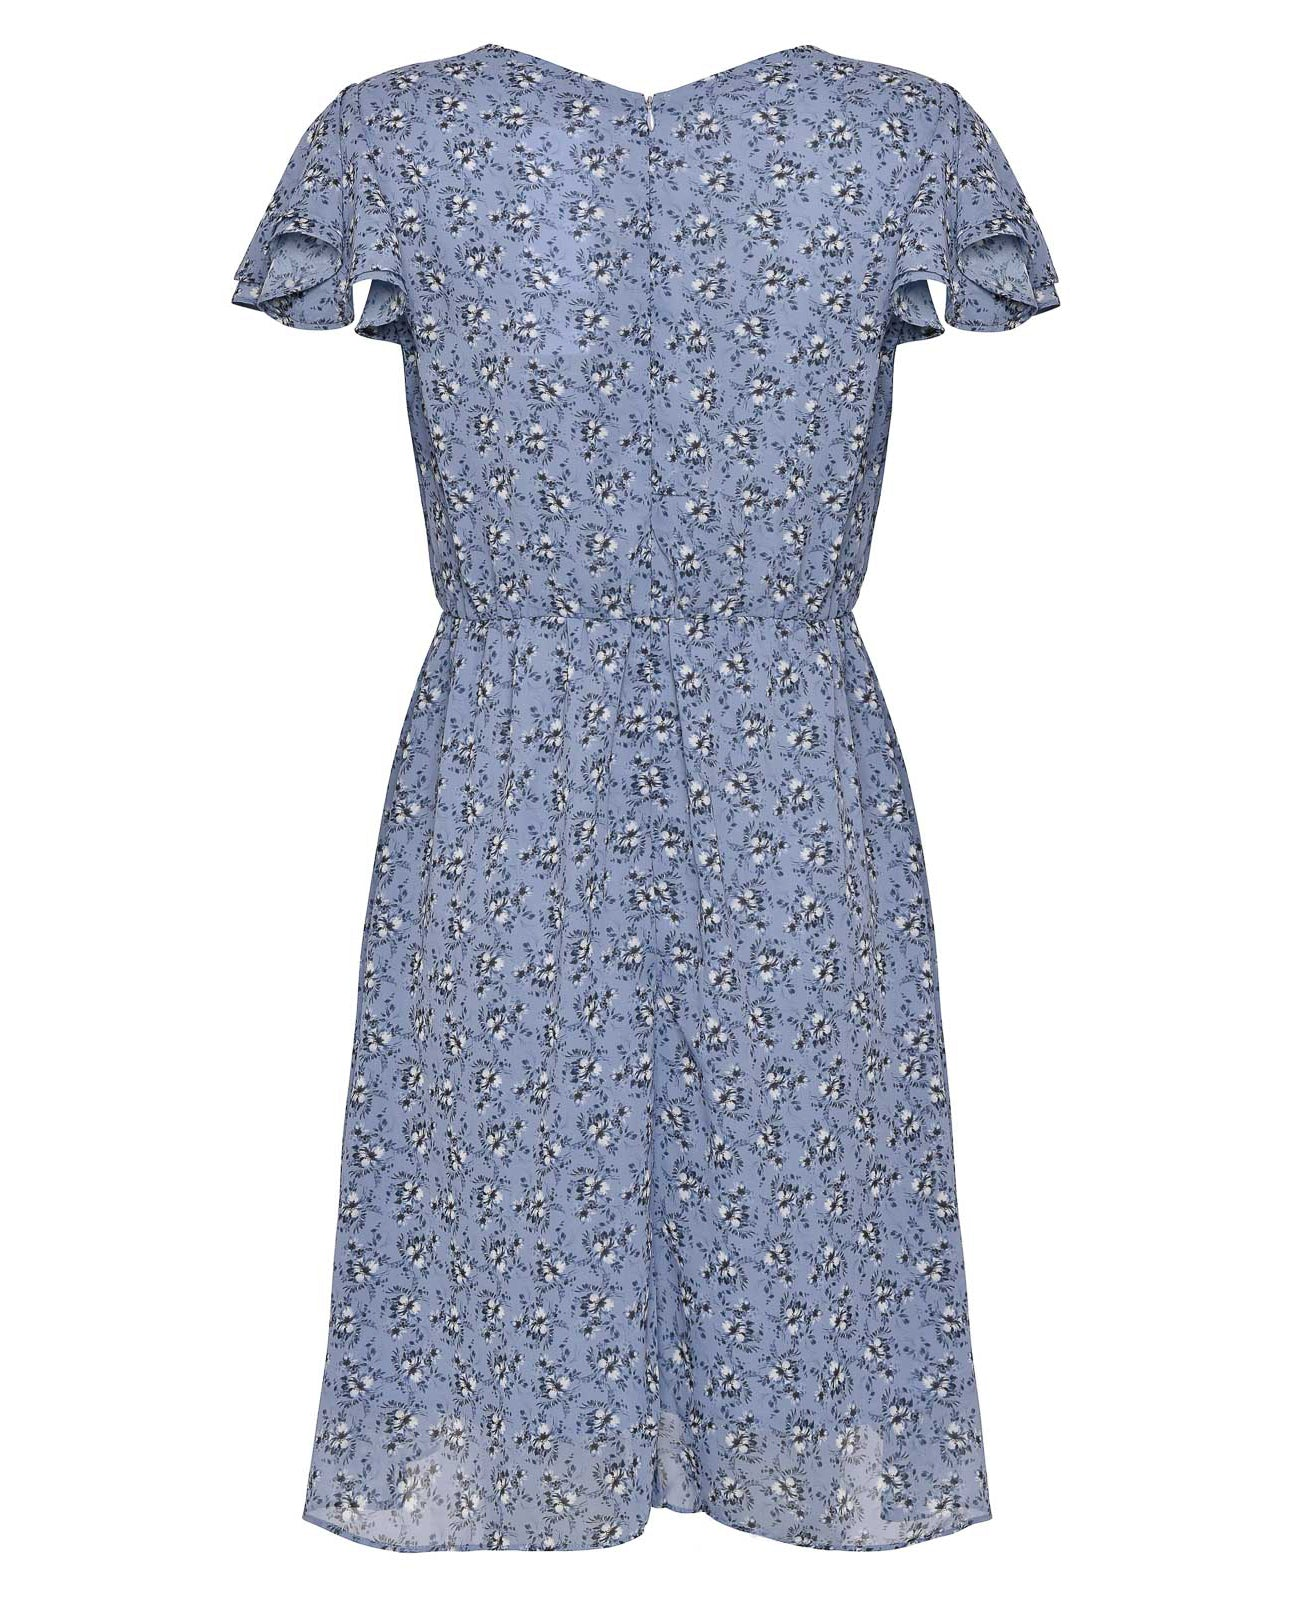 FRENCH CONNECTION BLUE FLORAL BELTED WRAP DRESS